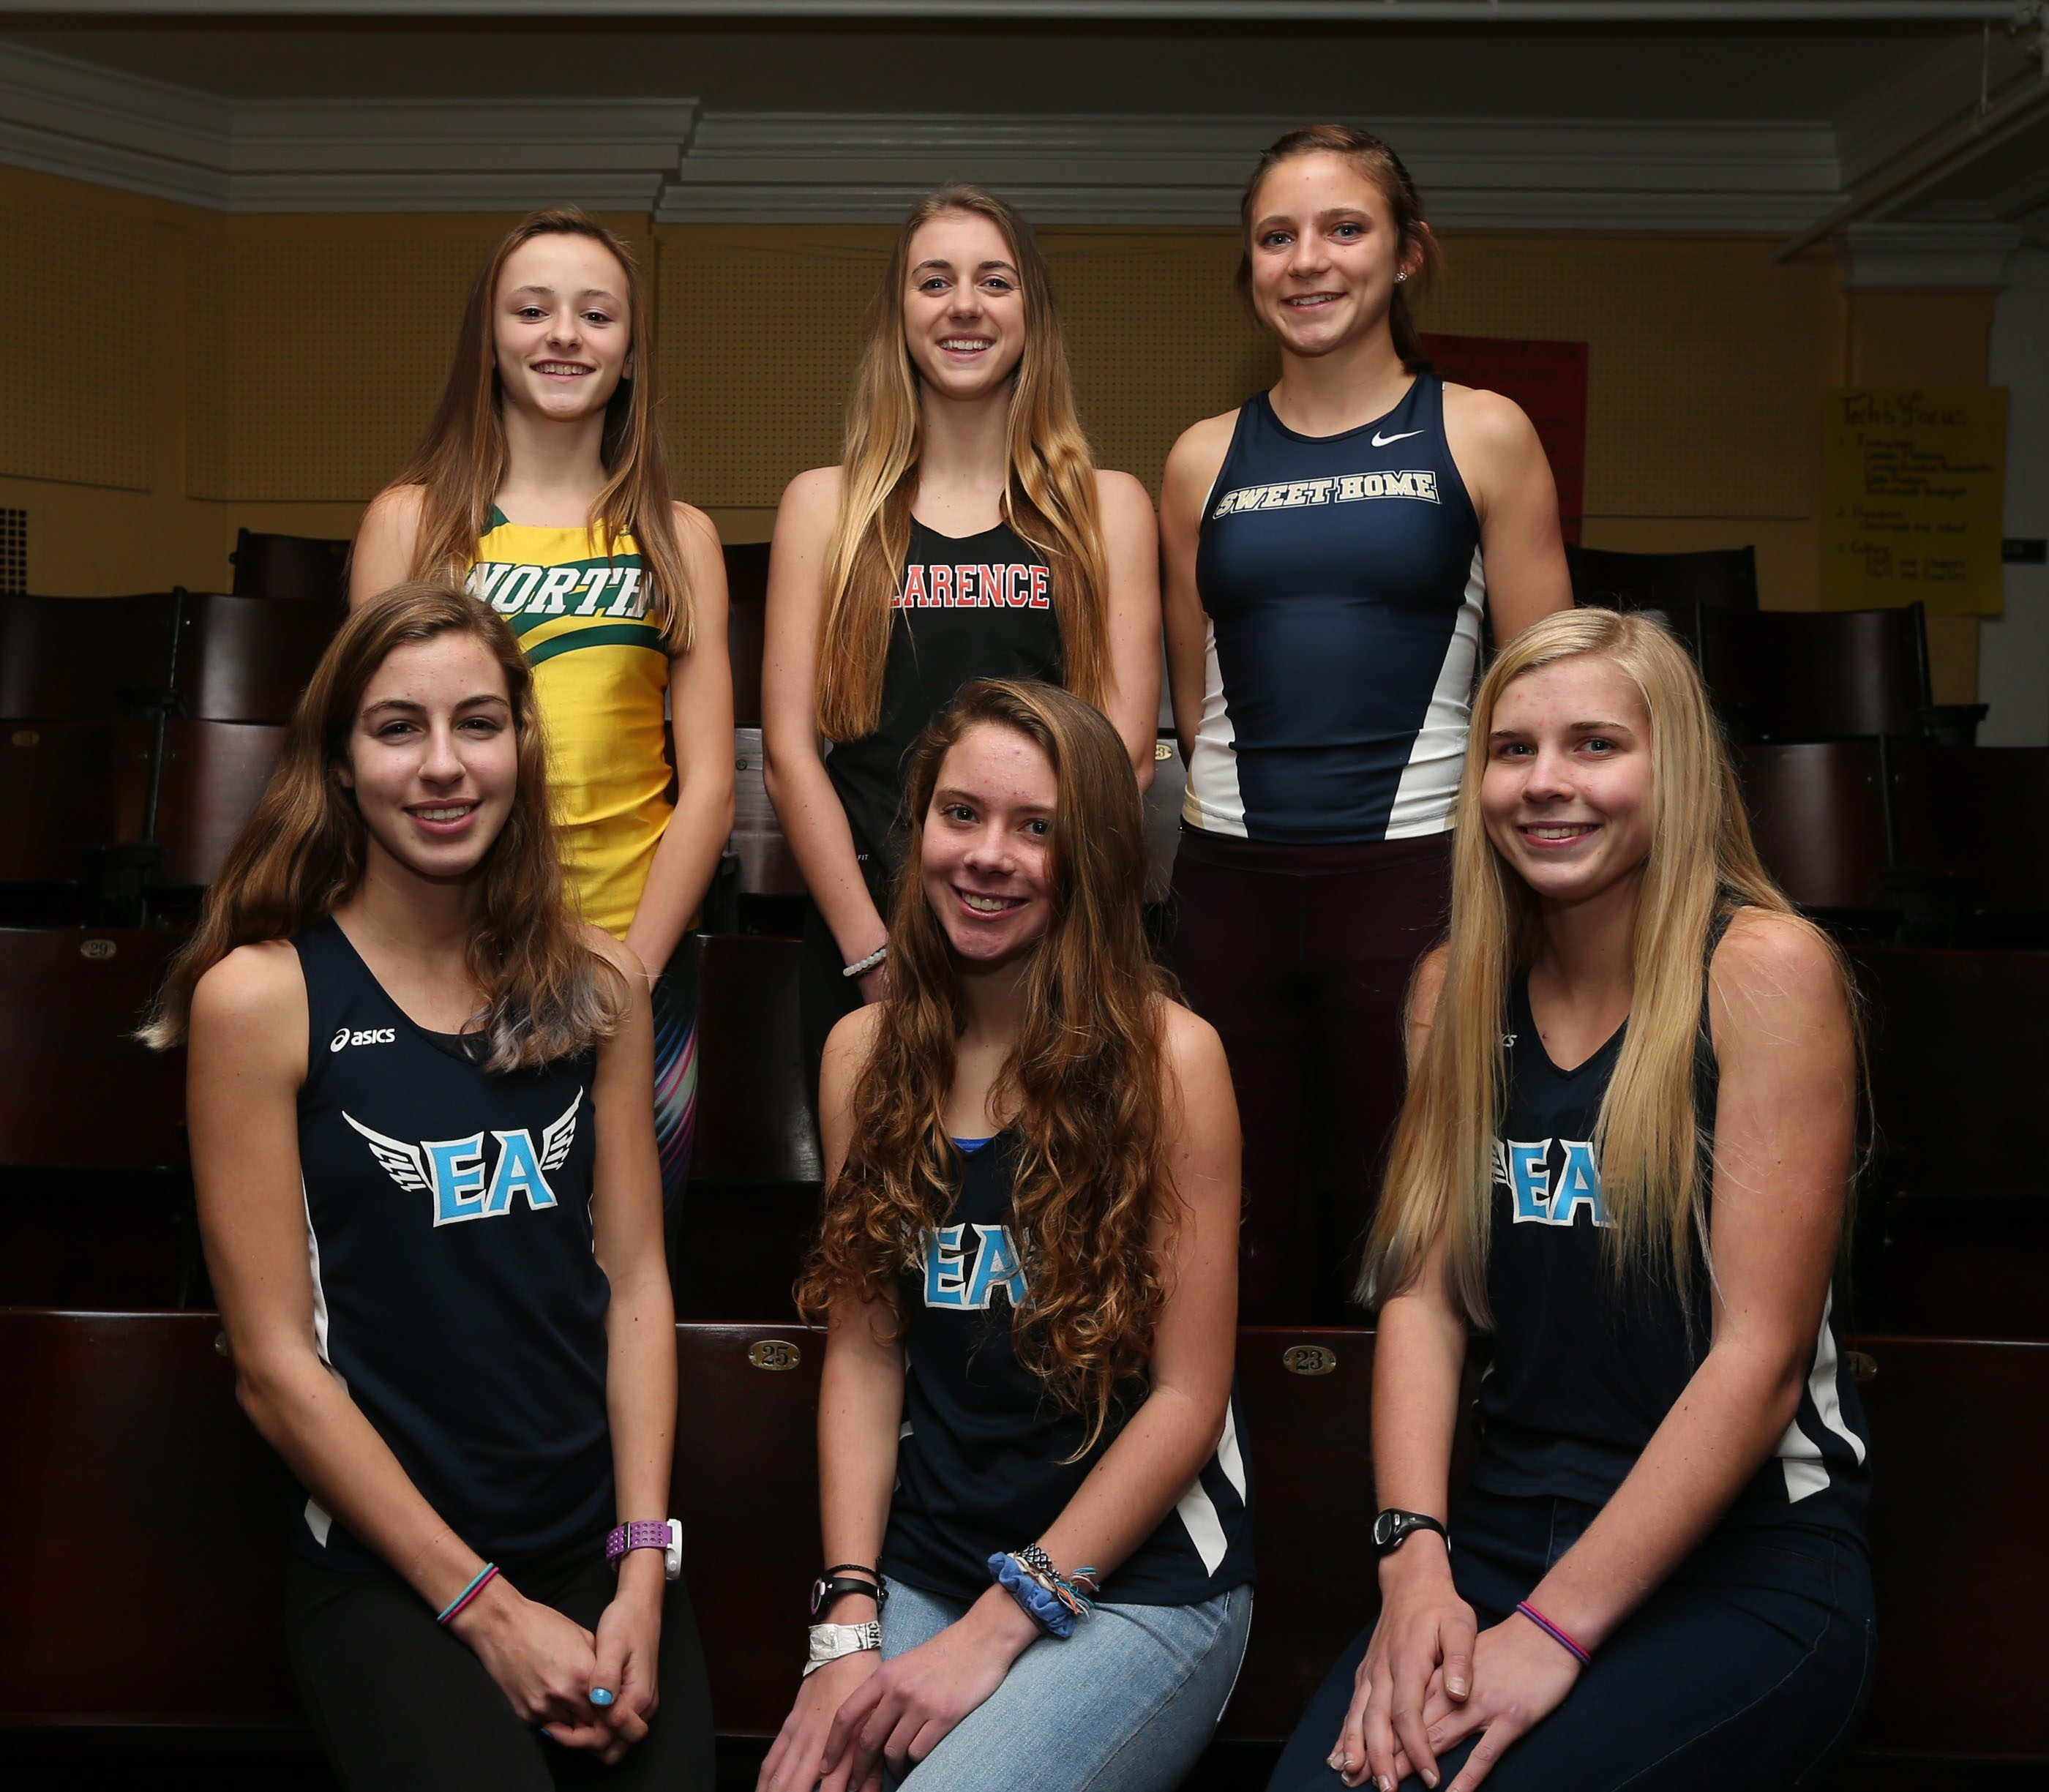 The All-Western New York girls cross country team: Front row (left to right),  Sophia Tasselmyer, Fiona Danieu, Molly McLaughlin. Back row (left to right): Naomi Wistner, Katrina Patterson and Sam Peterman. Not pictured: Hope Pietrocarlo, Maisy Webster.